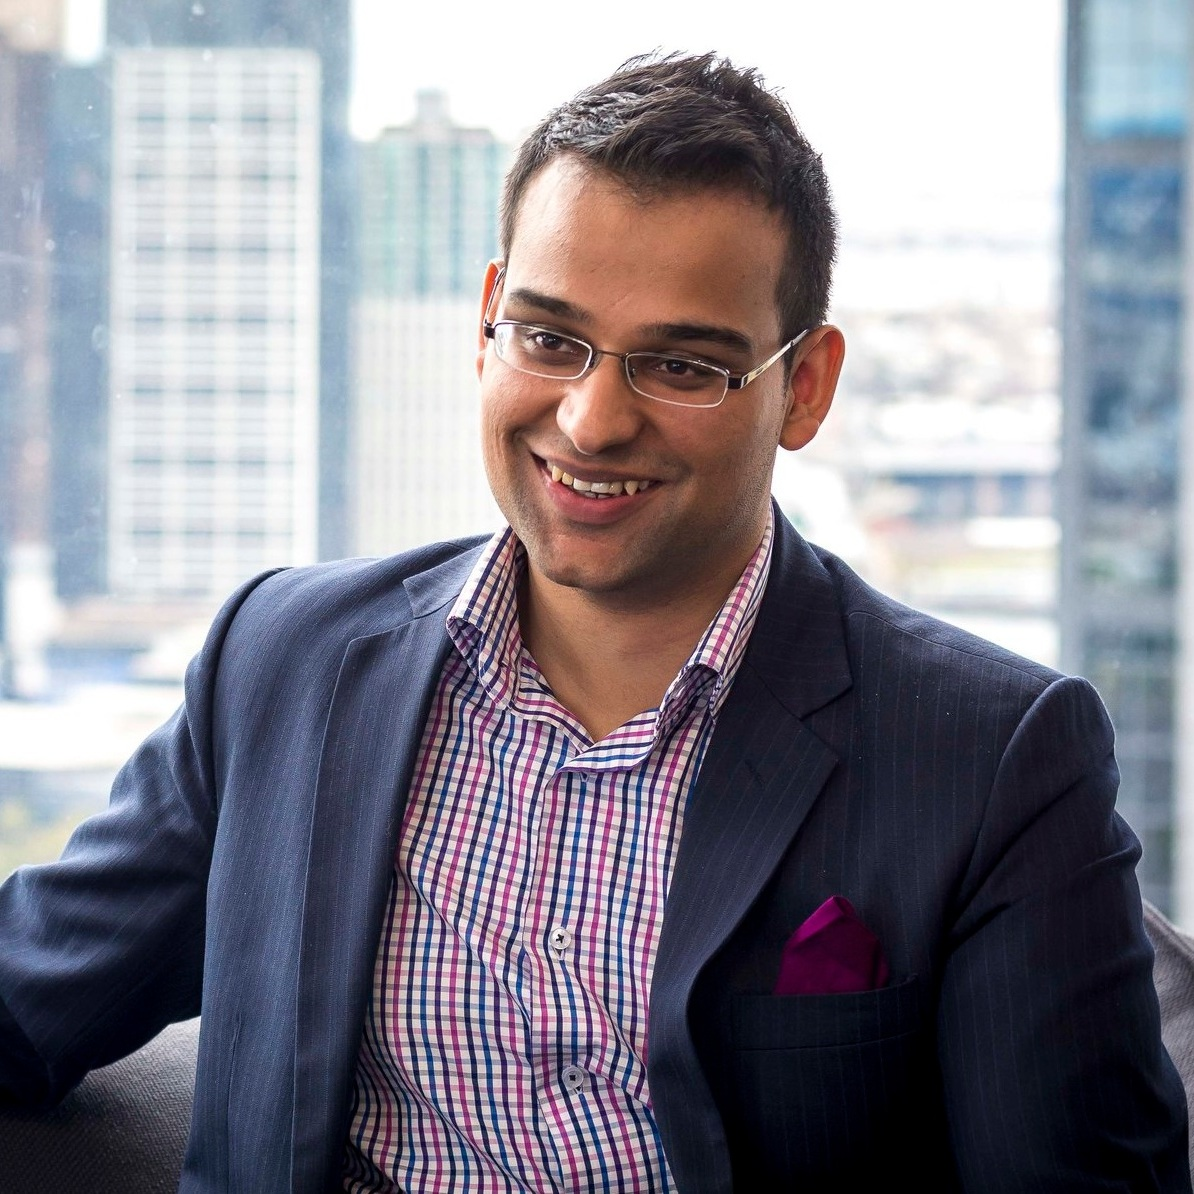 Shishir Pandit - Chair and CEOIndependent Strategy & Operations Consultant (Melbourne, Australia)